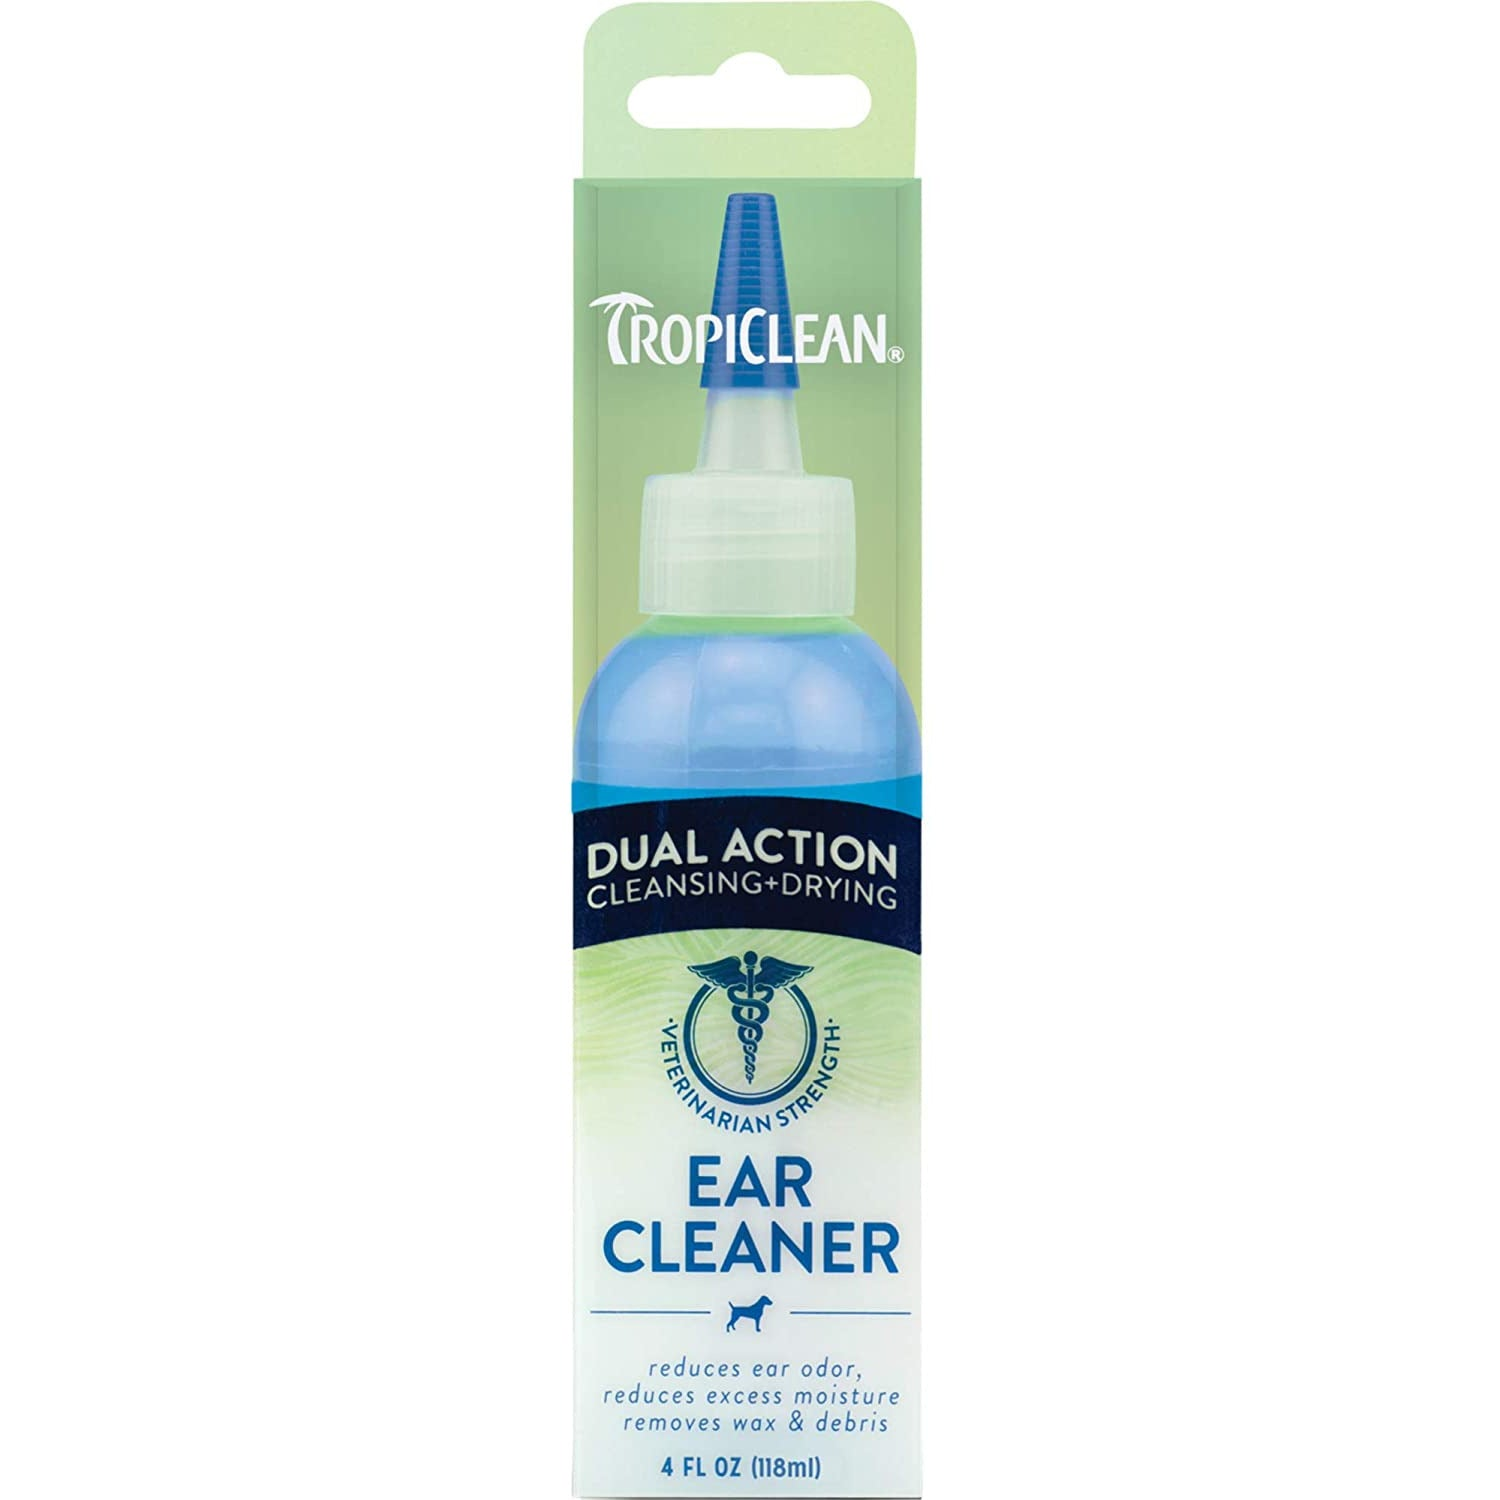 Tropiclean Dual Action Ear Cleaner, 4-oz